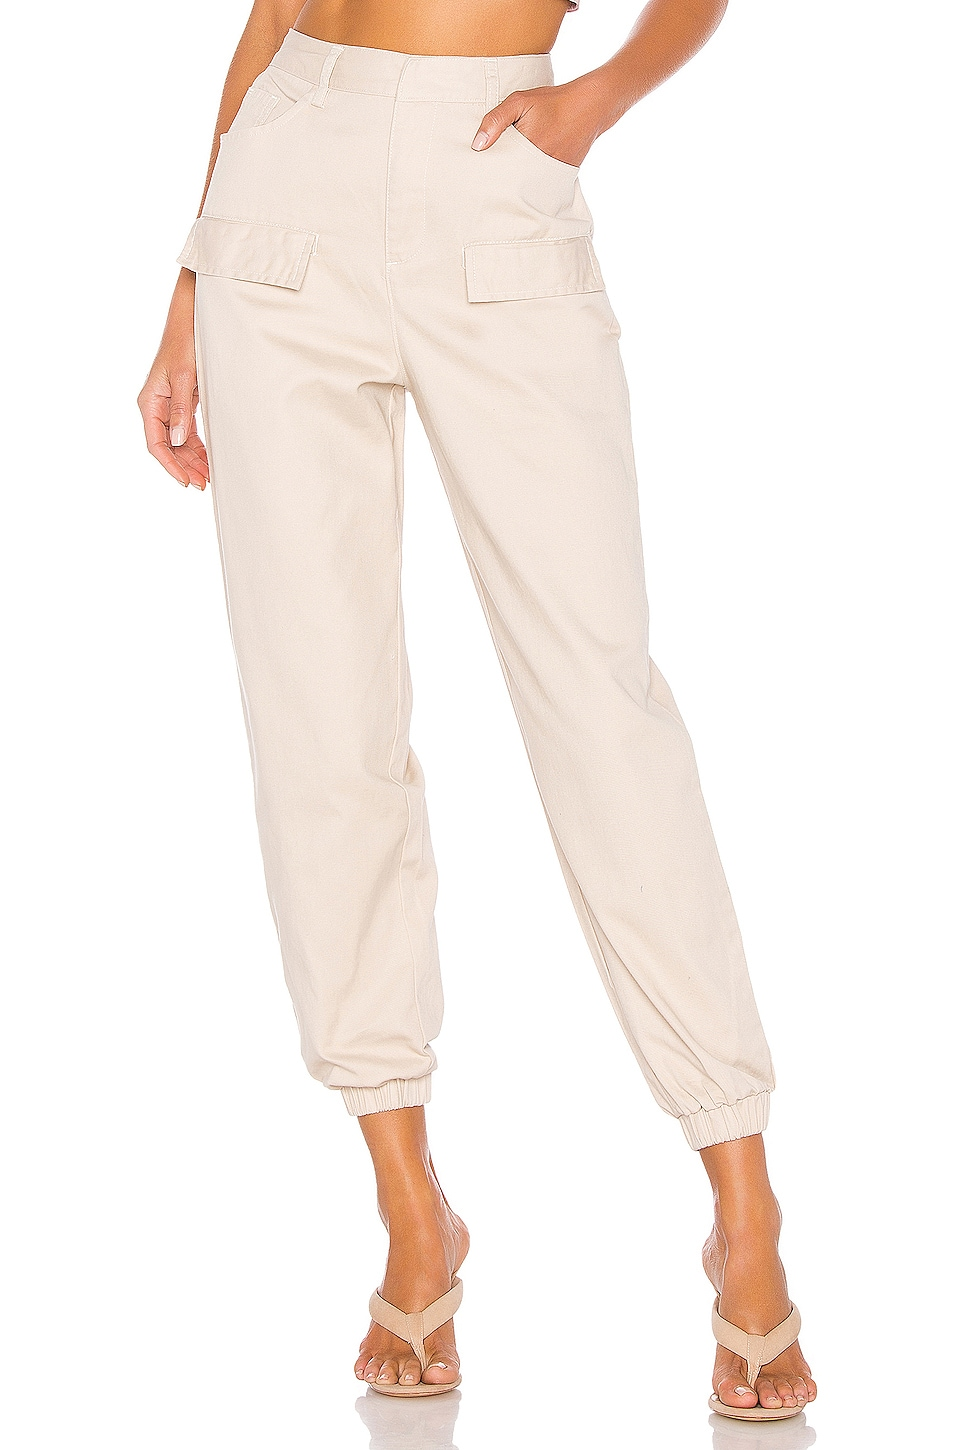 Lovers + Friends Arianna Pants in Khaki